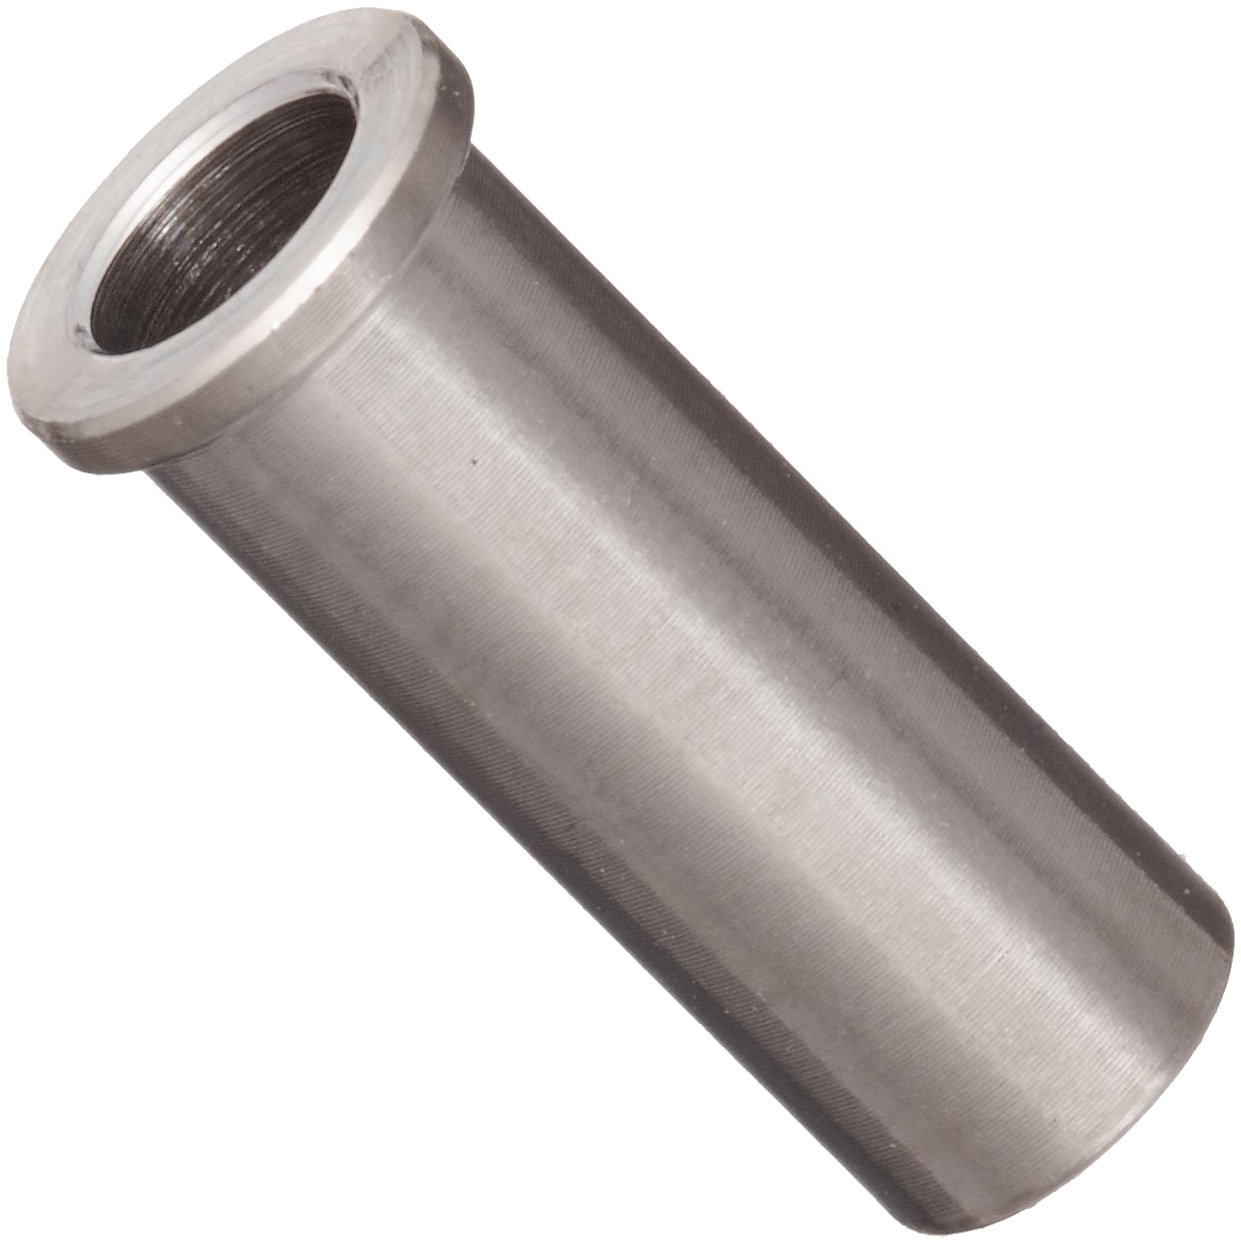 Parker A-Lok 4 TIZ .125-SS 316 Stainless Steel Compression Tube Fitting, Insert, 1/4' Tube OD, 0.170' Tube ID 1/4 Tube OD 0.170 Tube ID Parker Hannifin 4 TIZ .170-SS